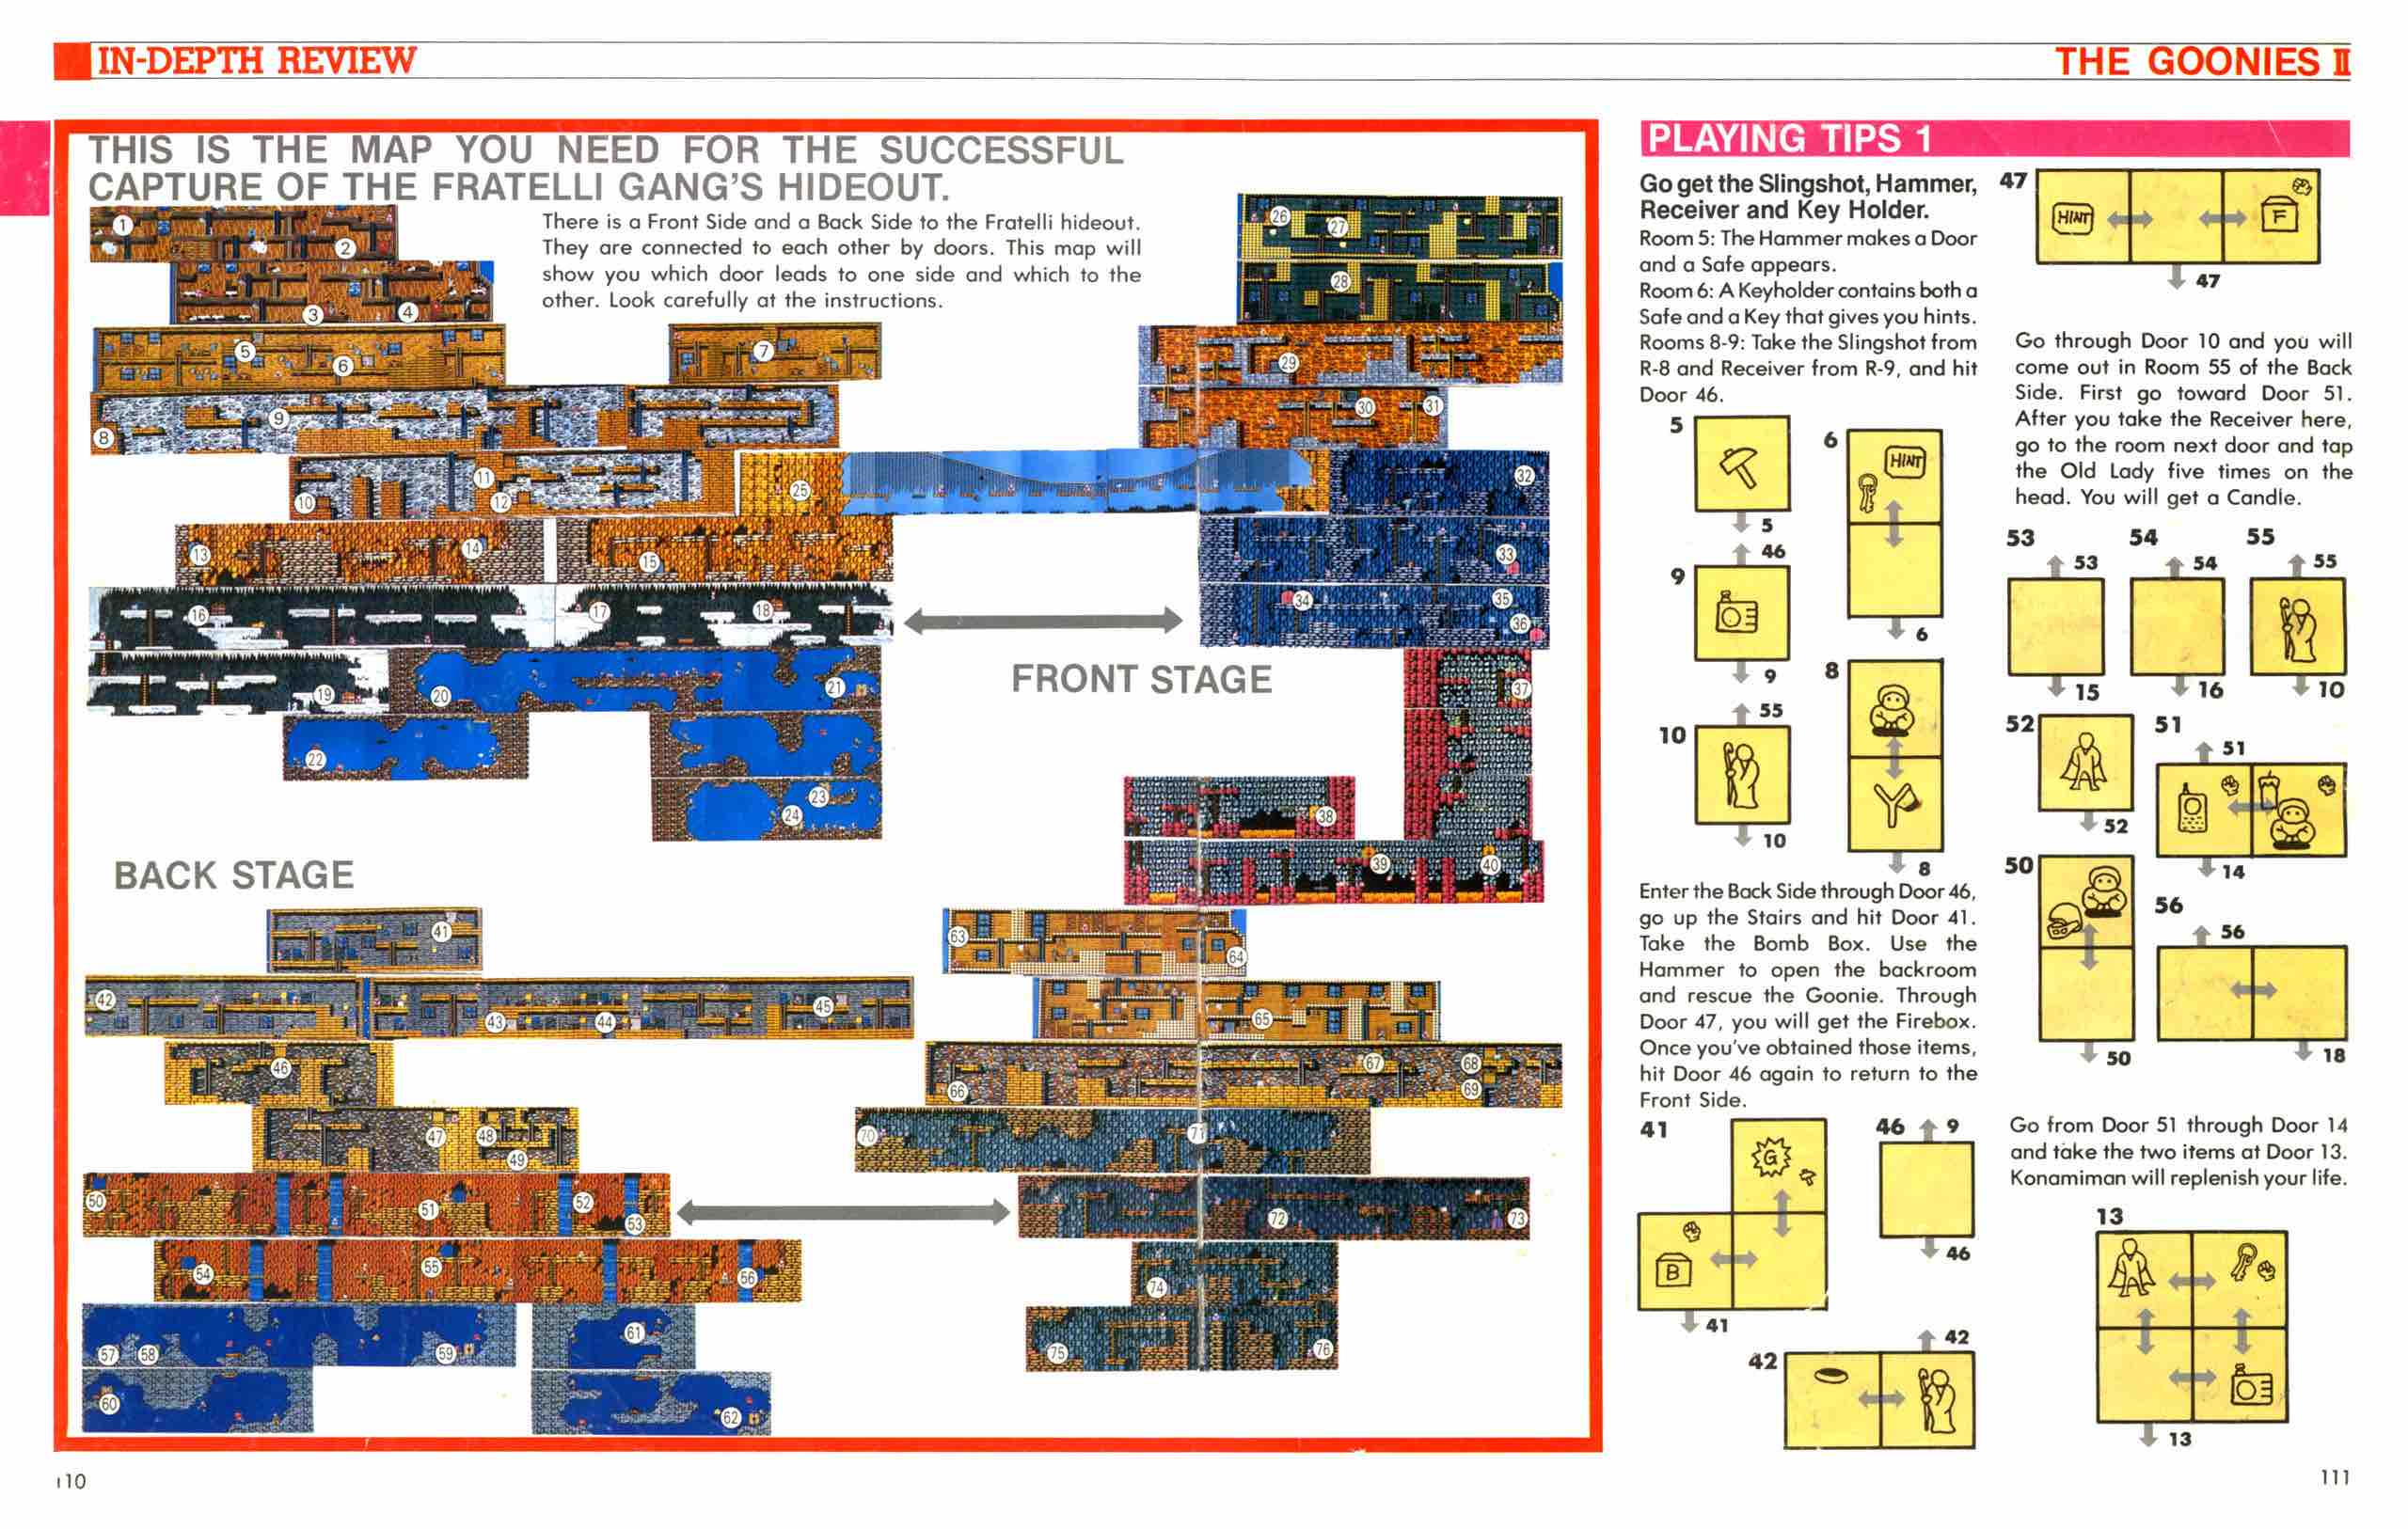 Official Nintendo Player's Guide Pg 110-111